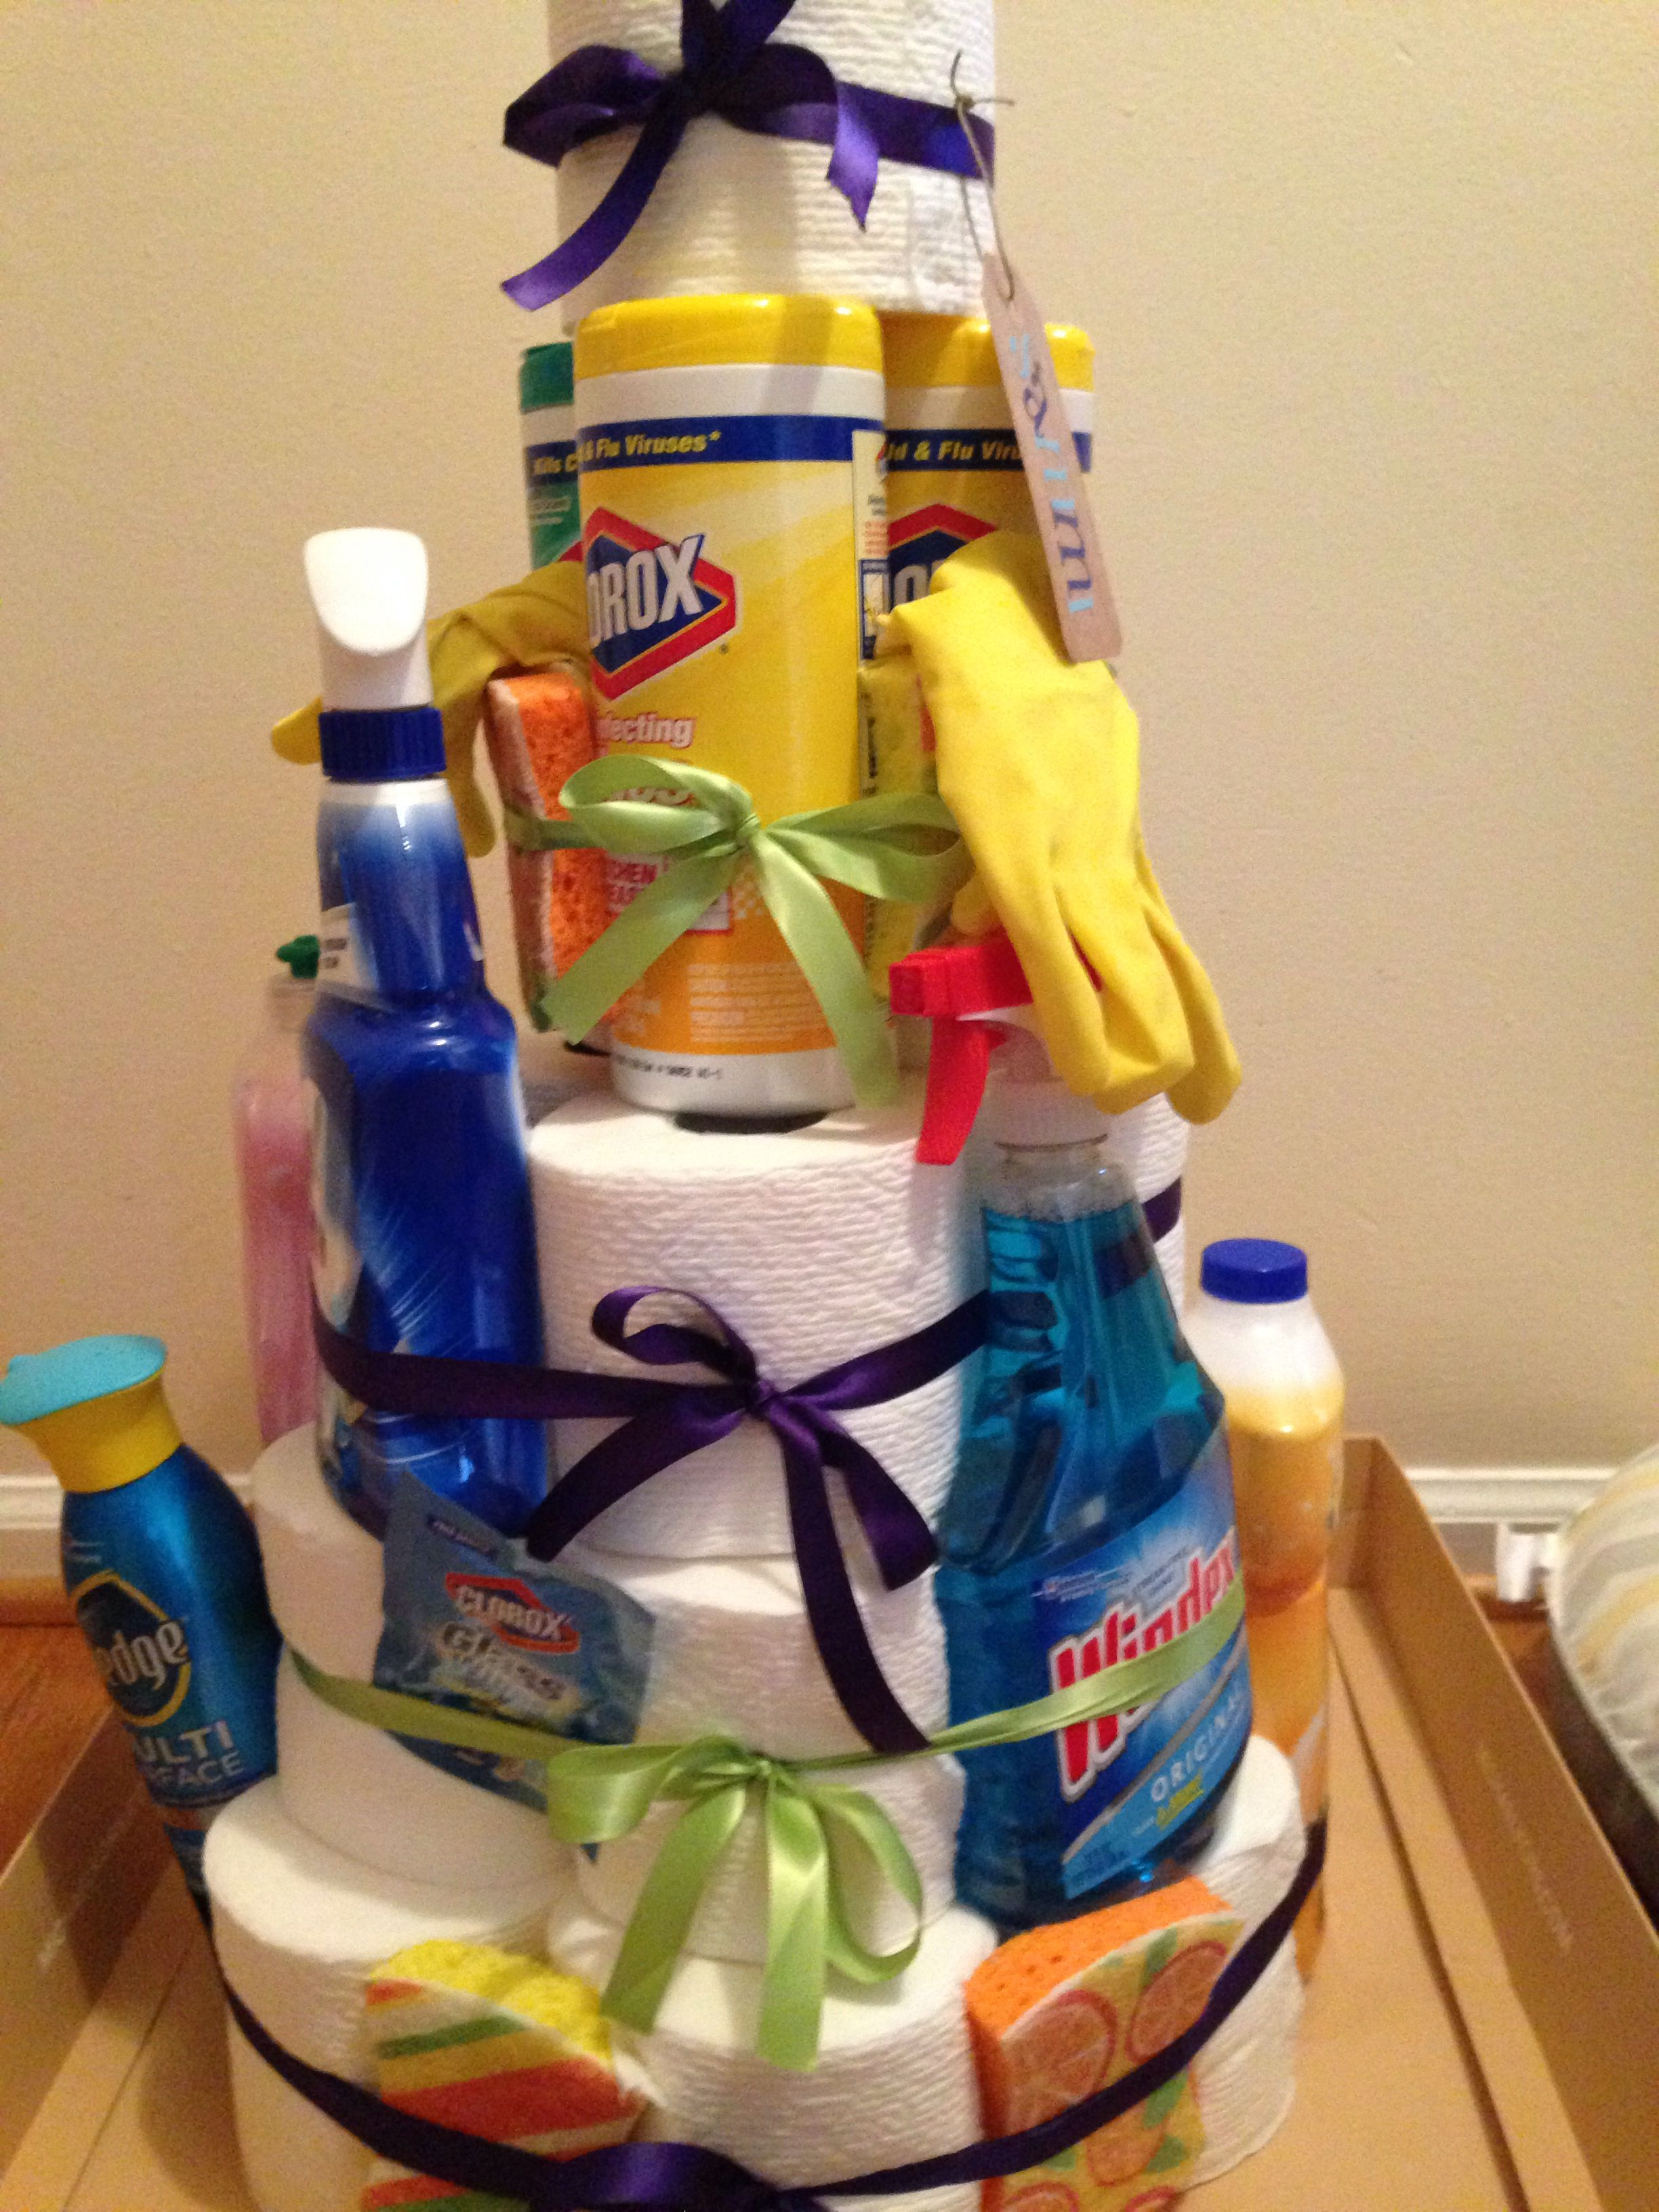 Toilet Paper Cake Filled With Cleaning Supplies For My Cousin S New House Present House Gifts House Warming Gift Diy House Warming Gifts